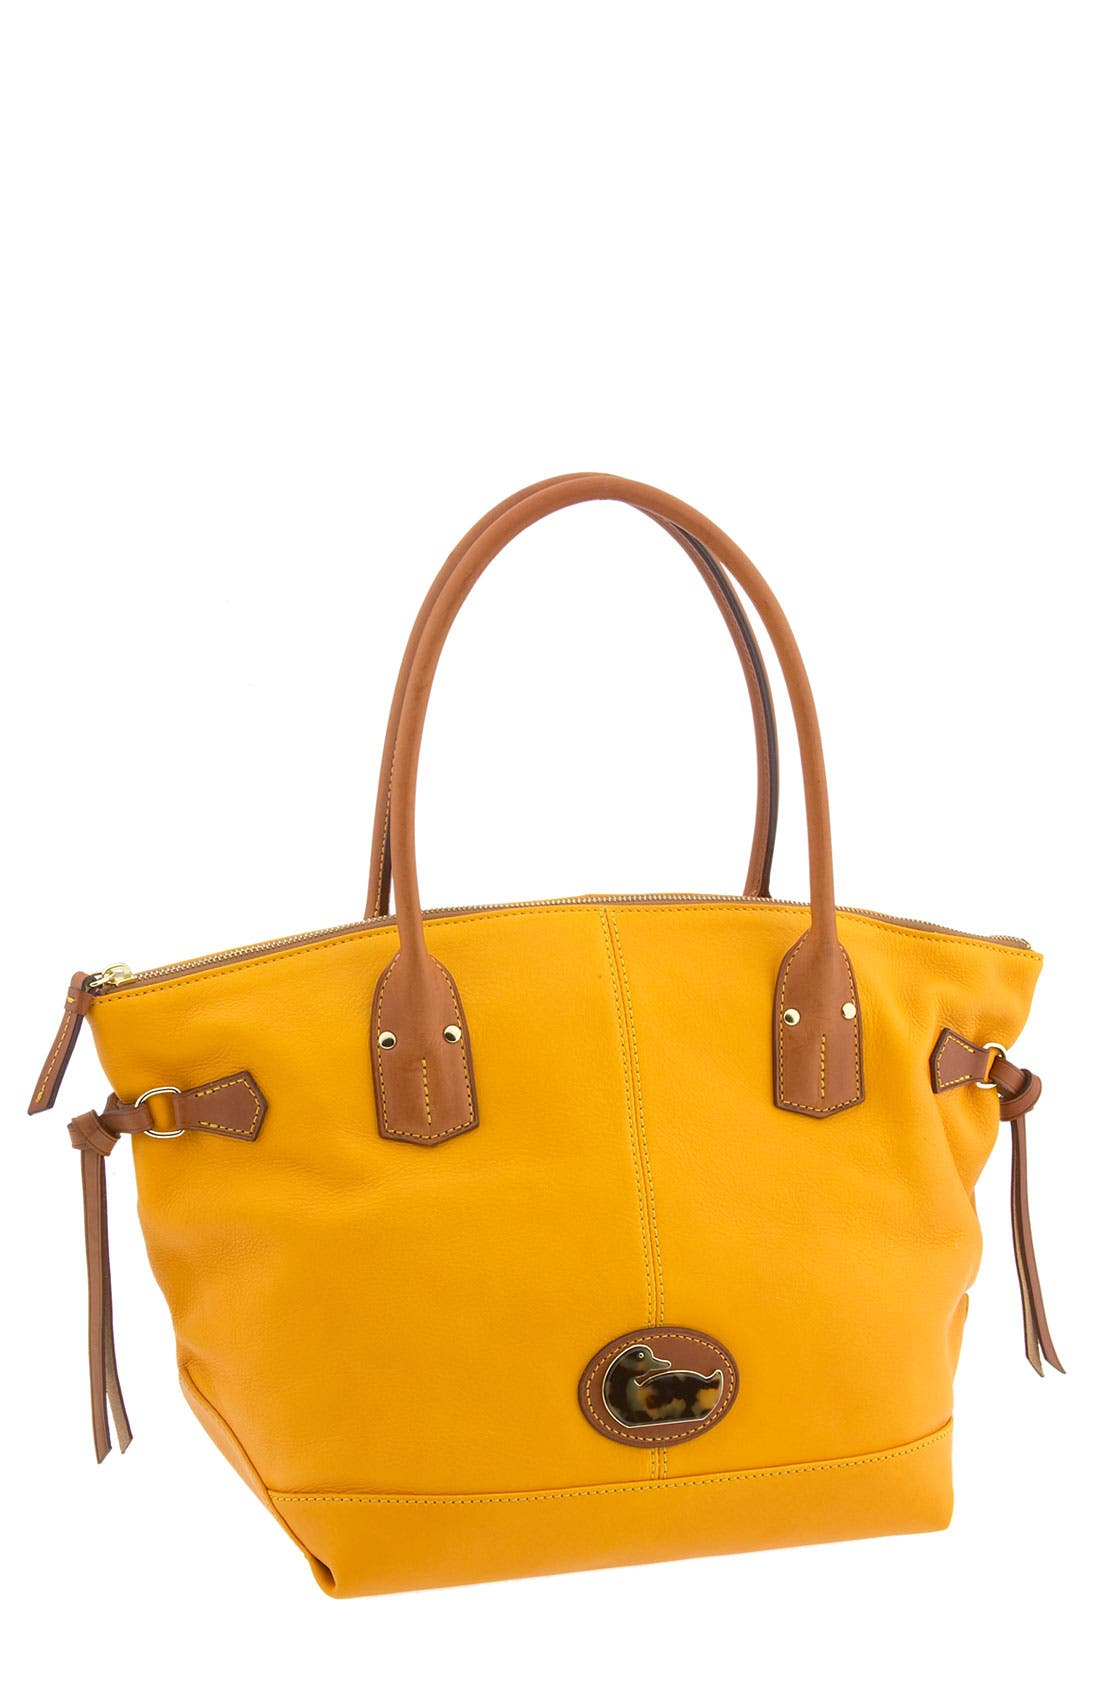 Main Image - Dooney & Bourke 'Champosa - Medium' Leather Tote